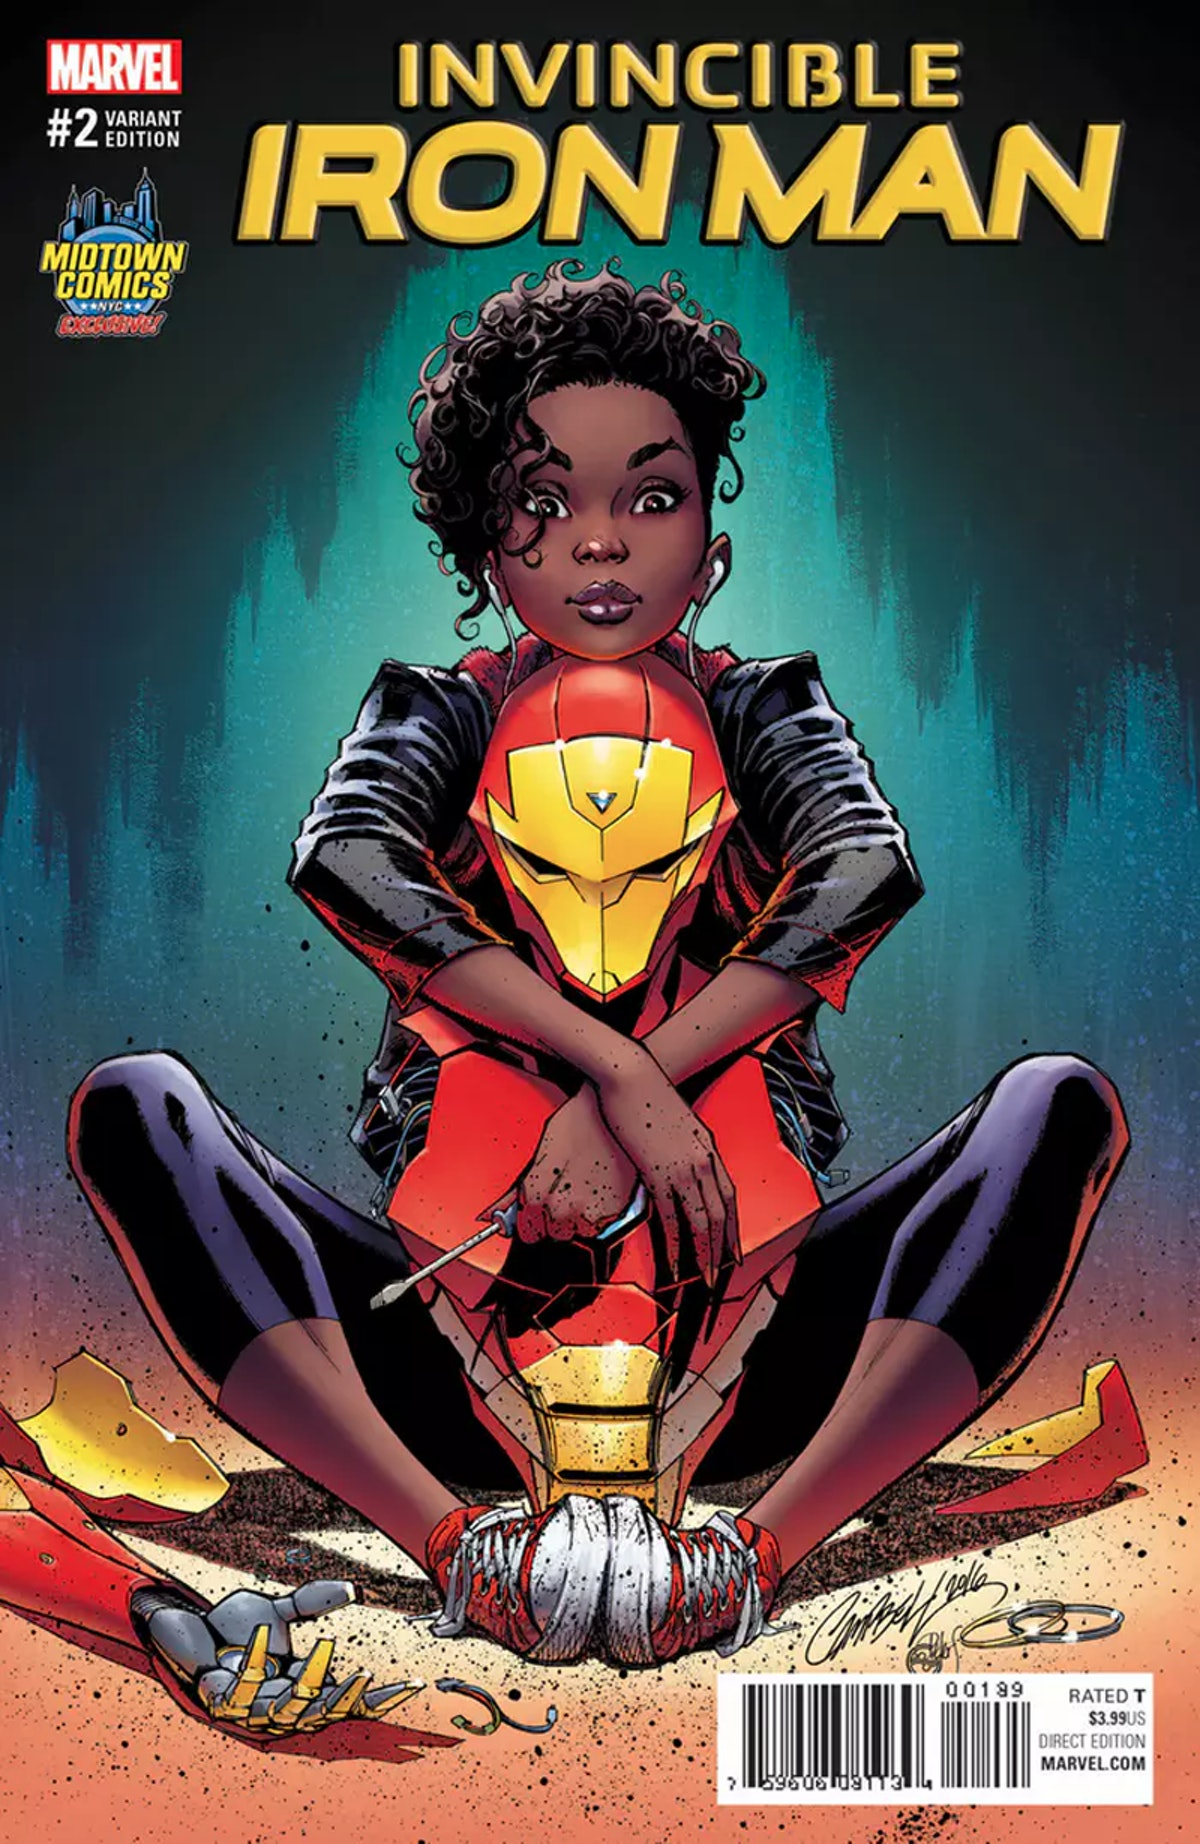 Invincible Iron Man #2 Variant Cover for Marvel by J. Scott Campbell